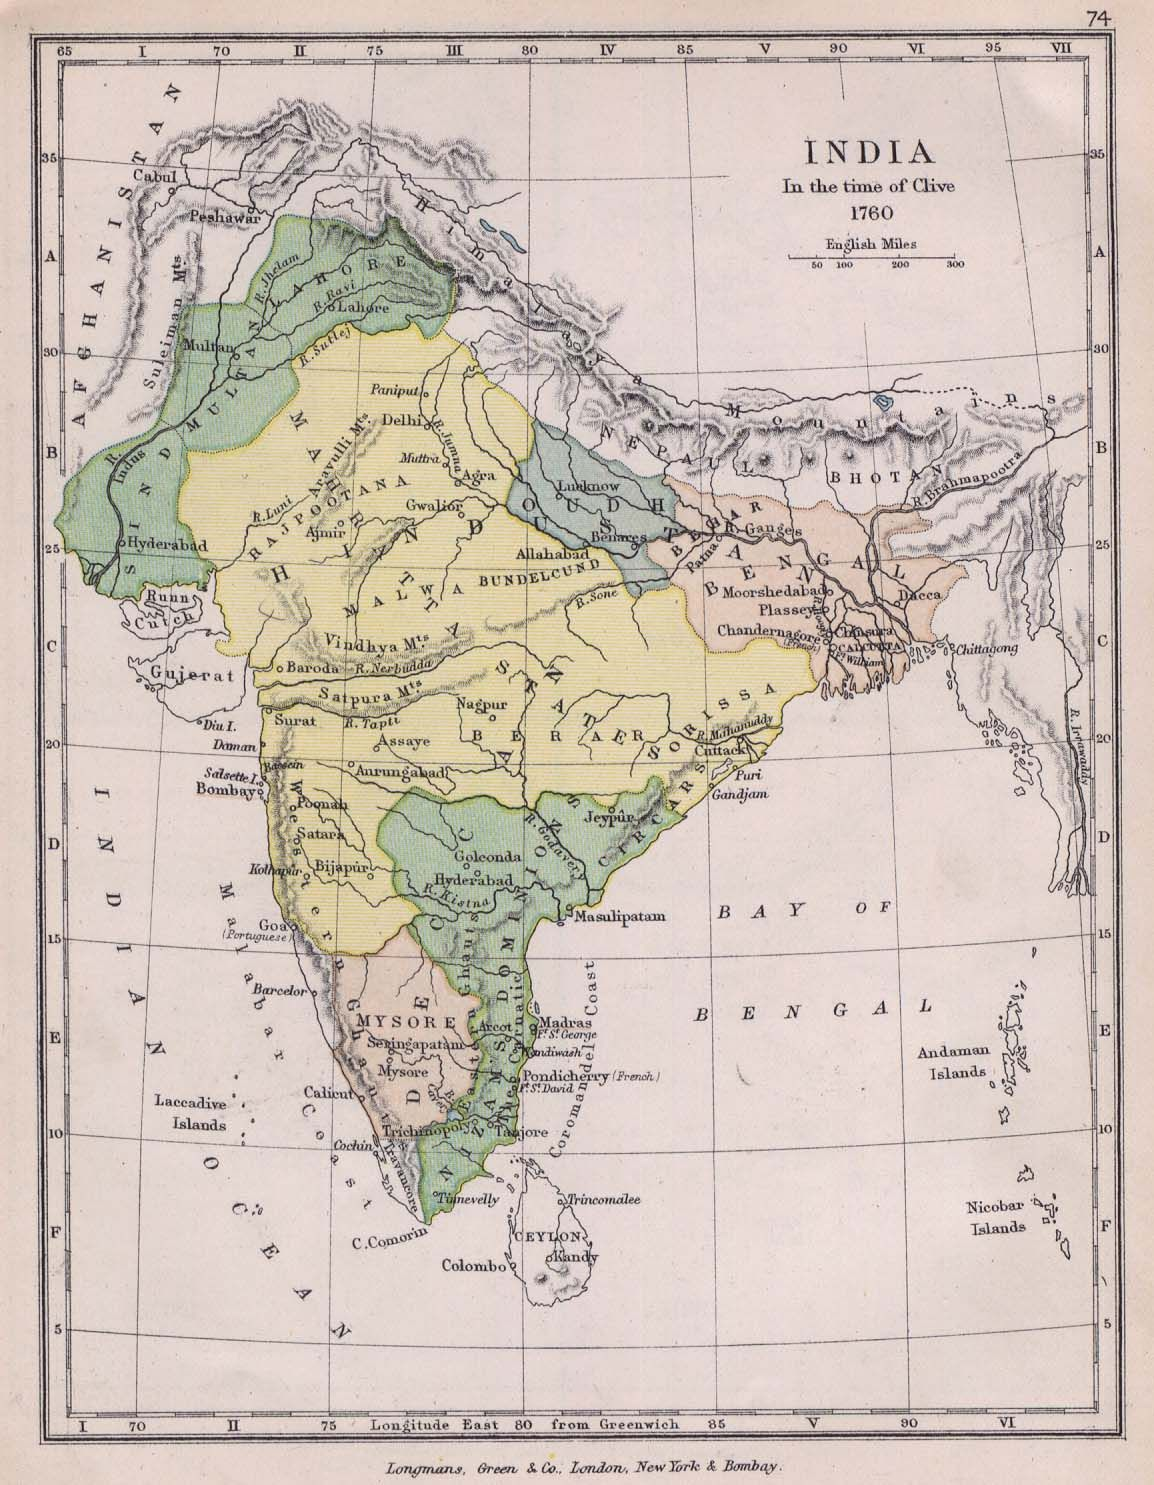 Year 1760 Ancient Indian Map Old Indian Map India Map Historical Maps India World Map